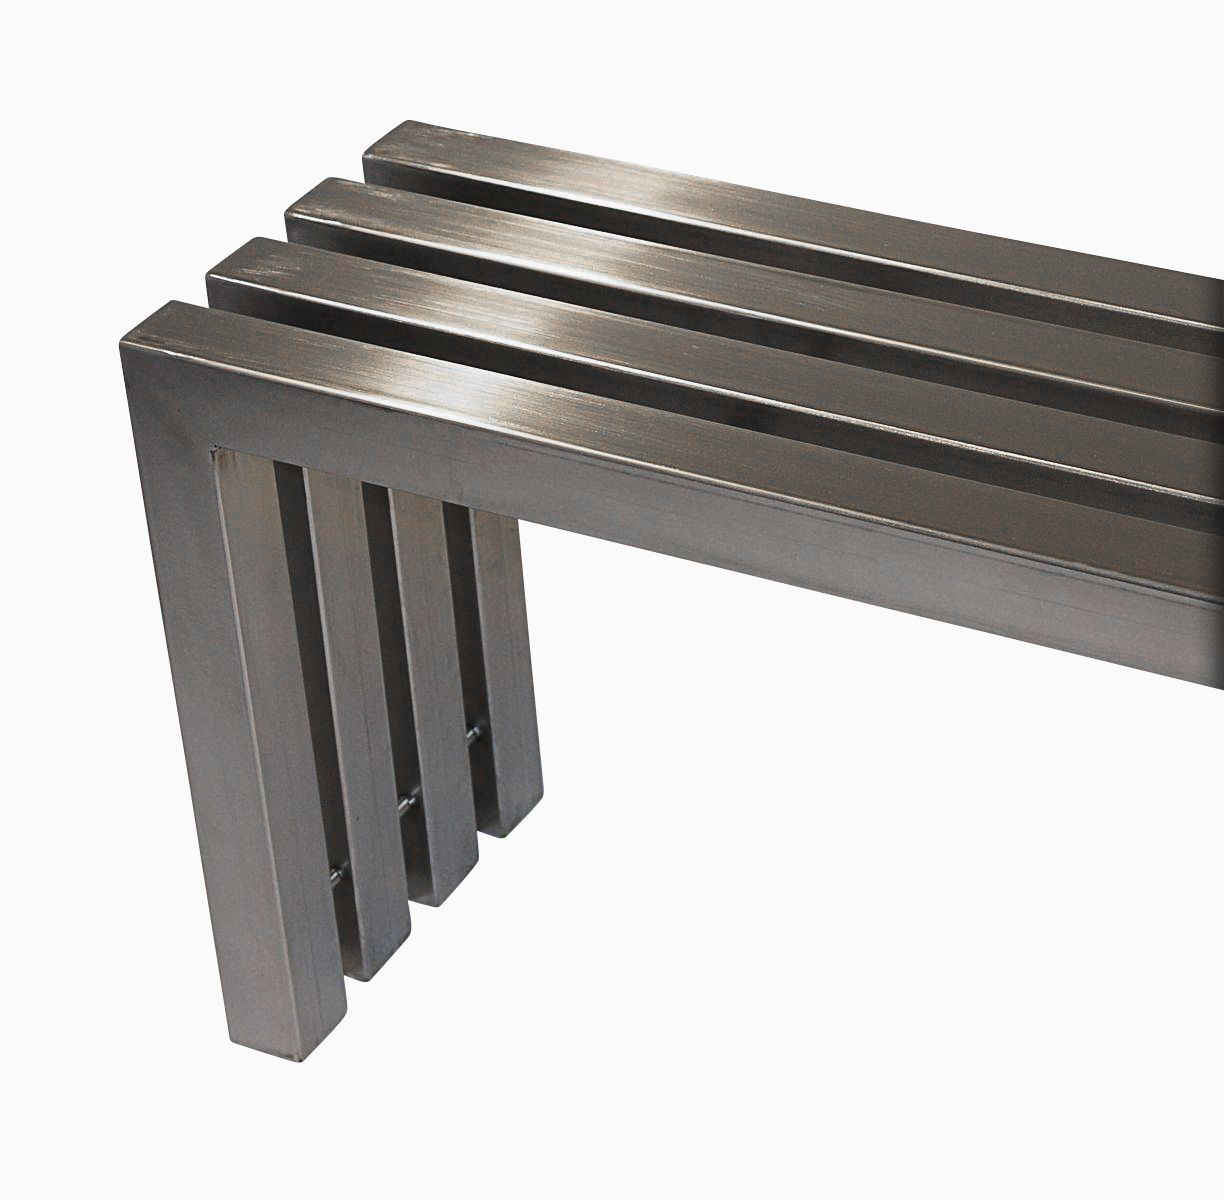 Buy A Hand Made Modern Stainless Steel Tube Bench Made To Order From Fast Lane Metalworks